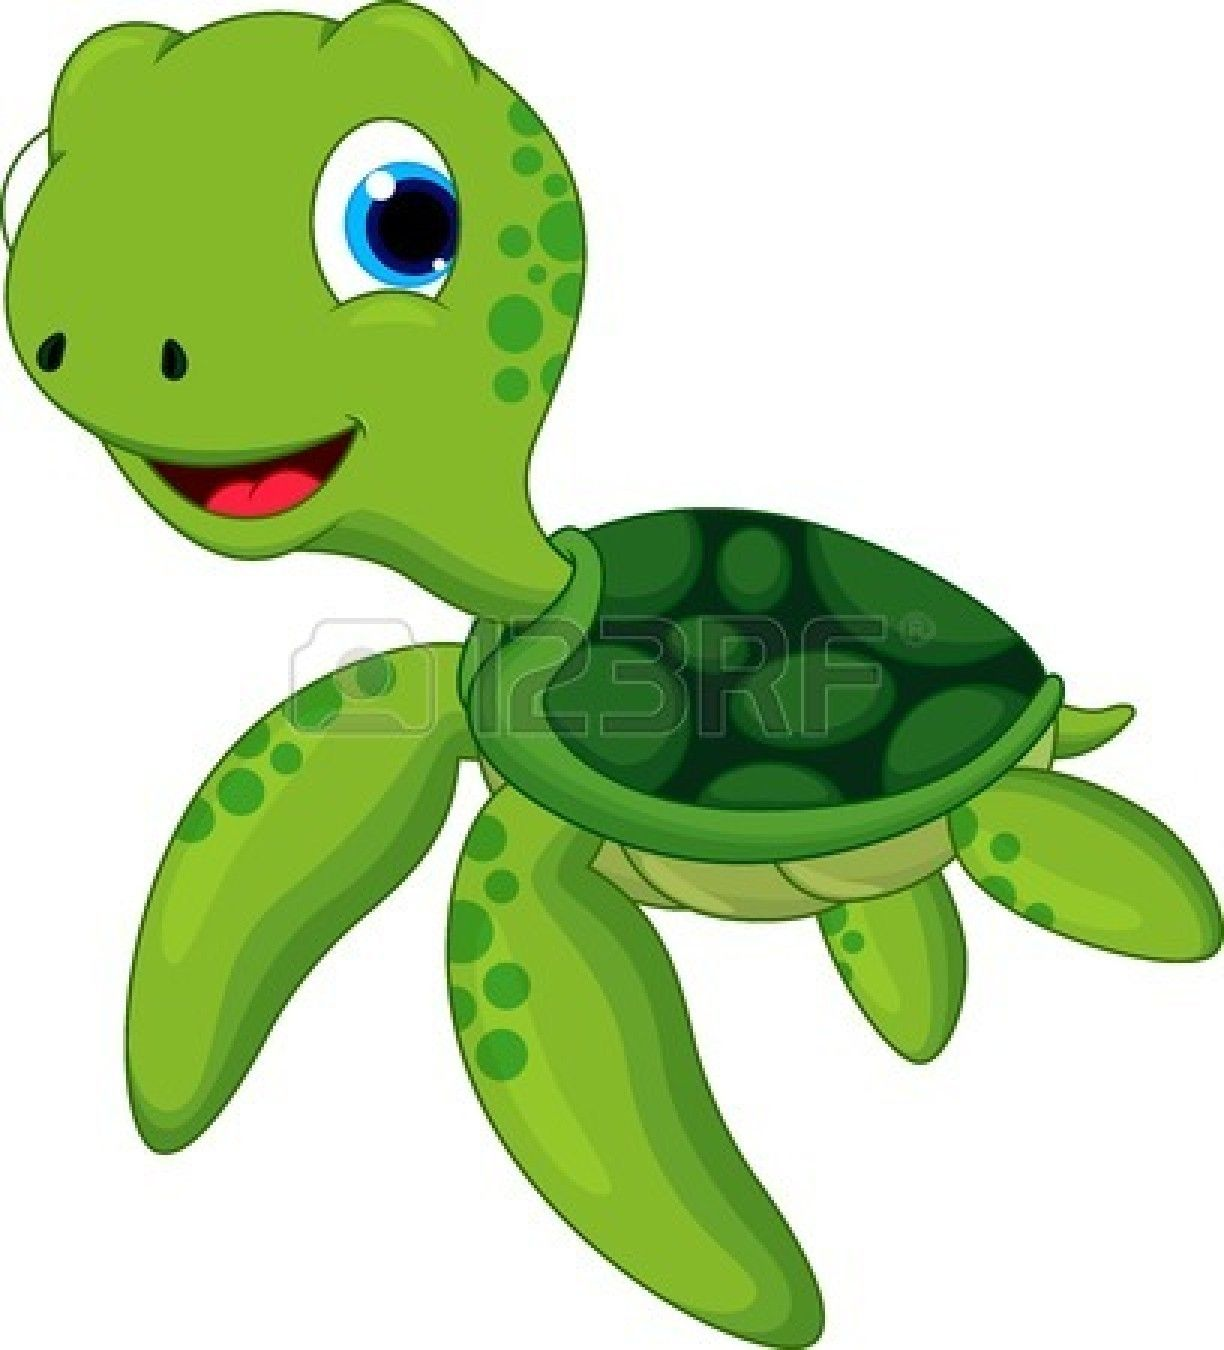 Happy Turtle Cartoon Cartoon Turtle Cute Turtle Cartoon Cute